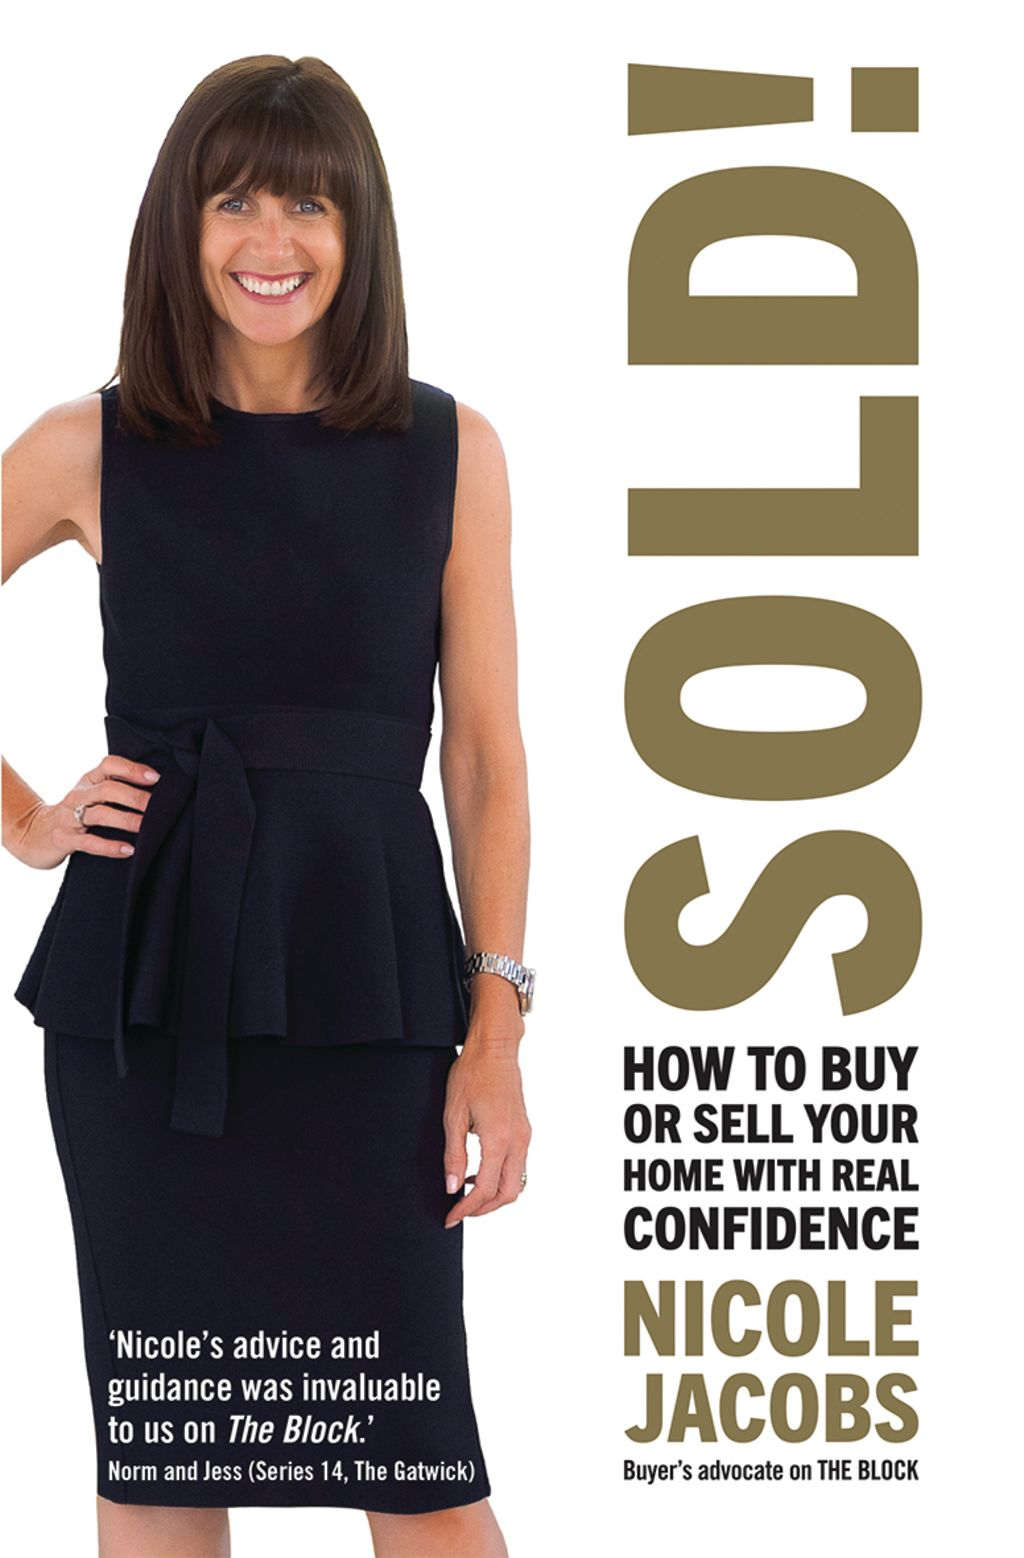 SOLD! by Nicole Jacobs published by Hardie Grant Books RRP $29.99 and is available in stores nationally.